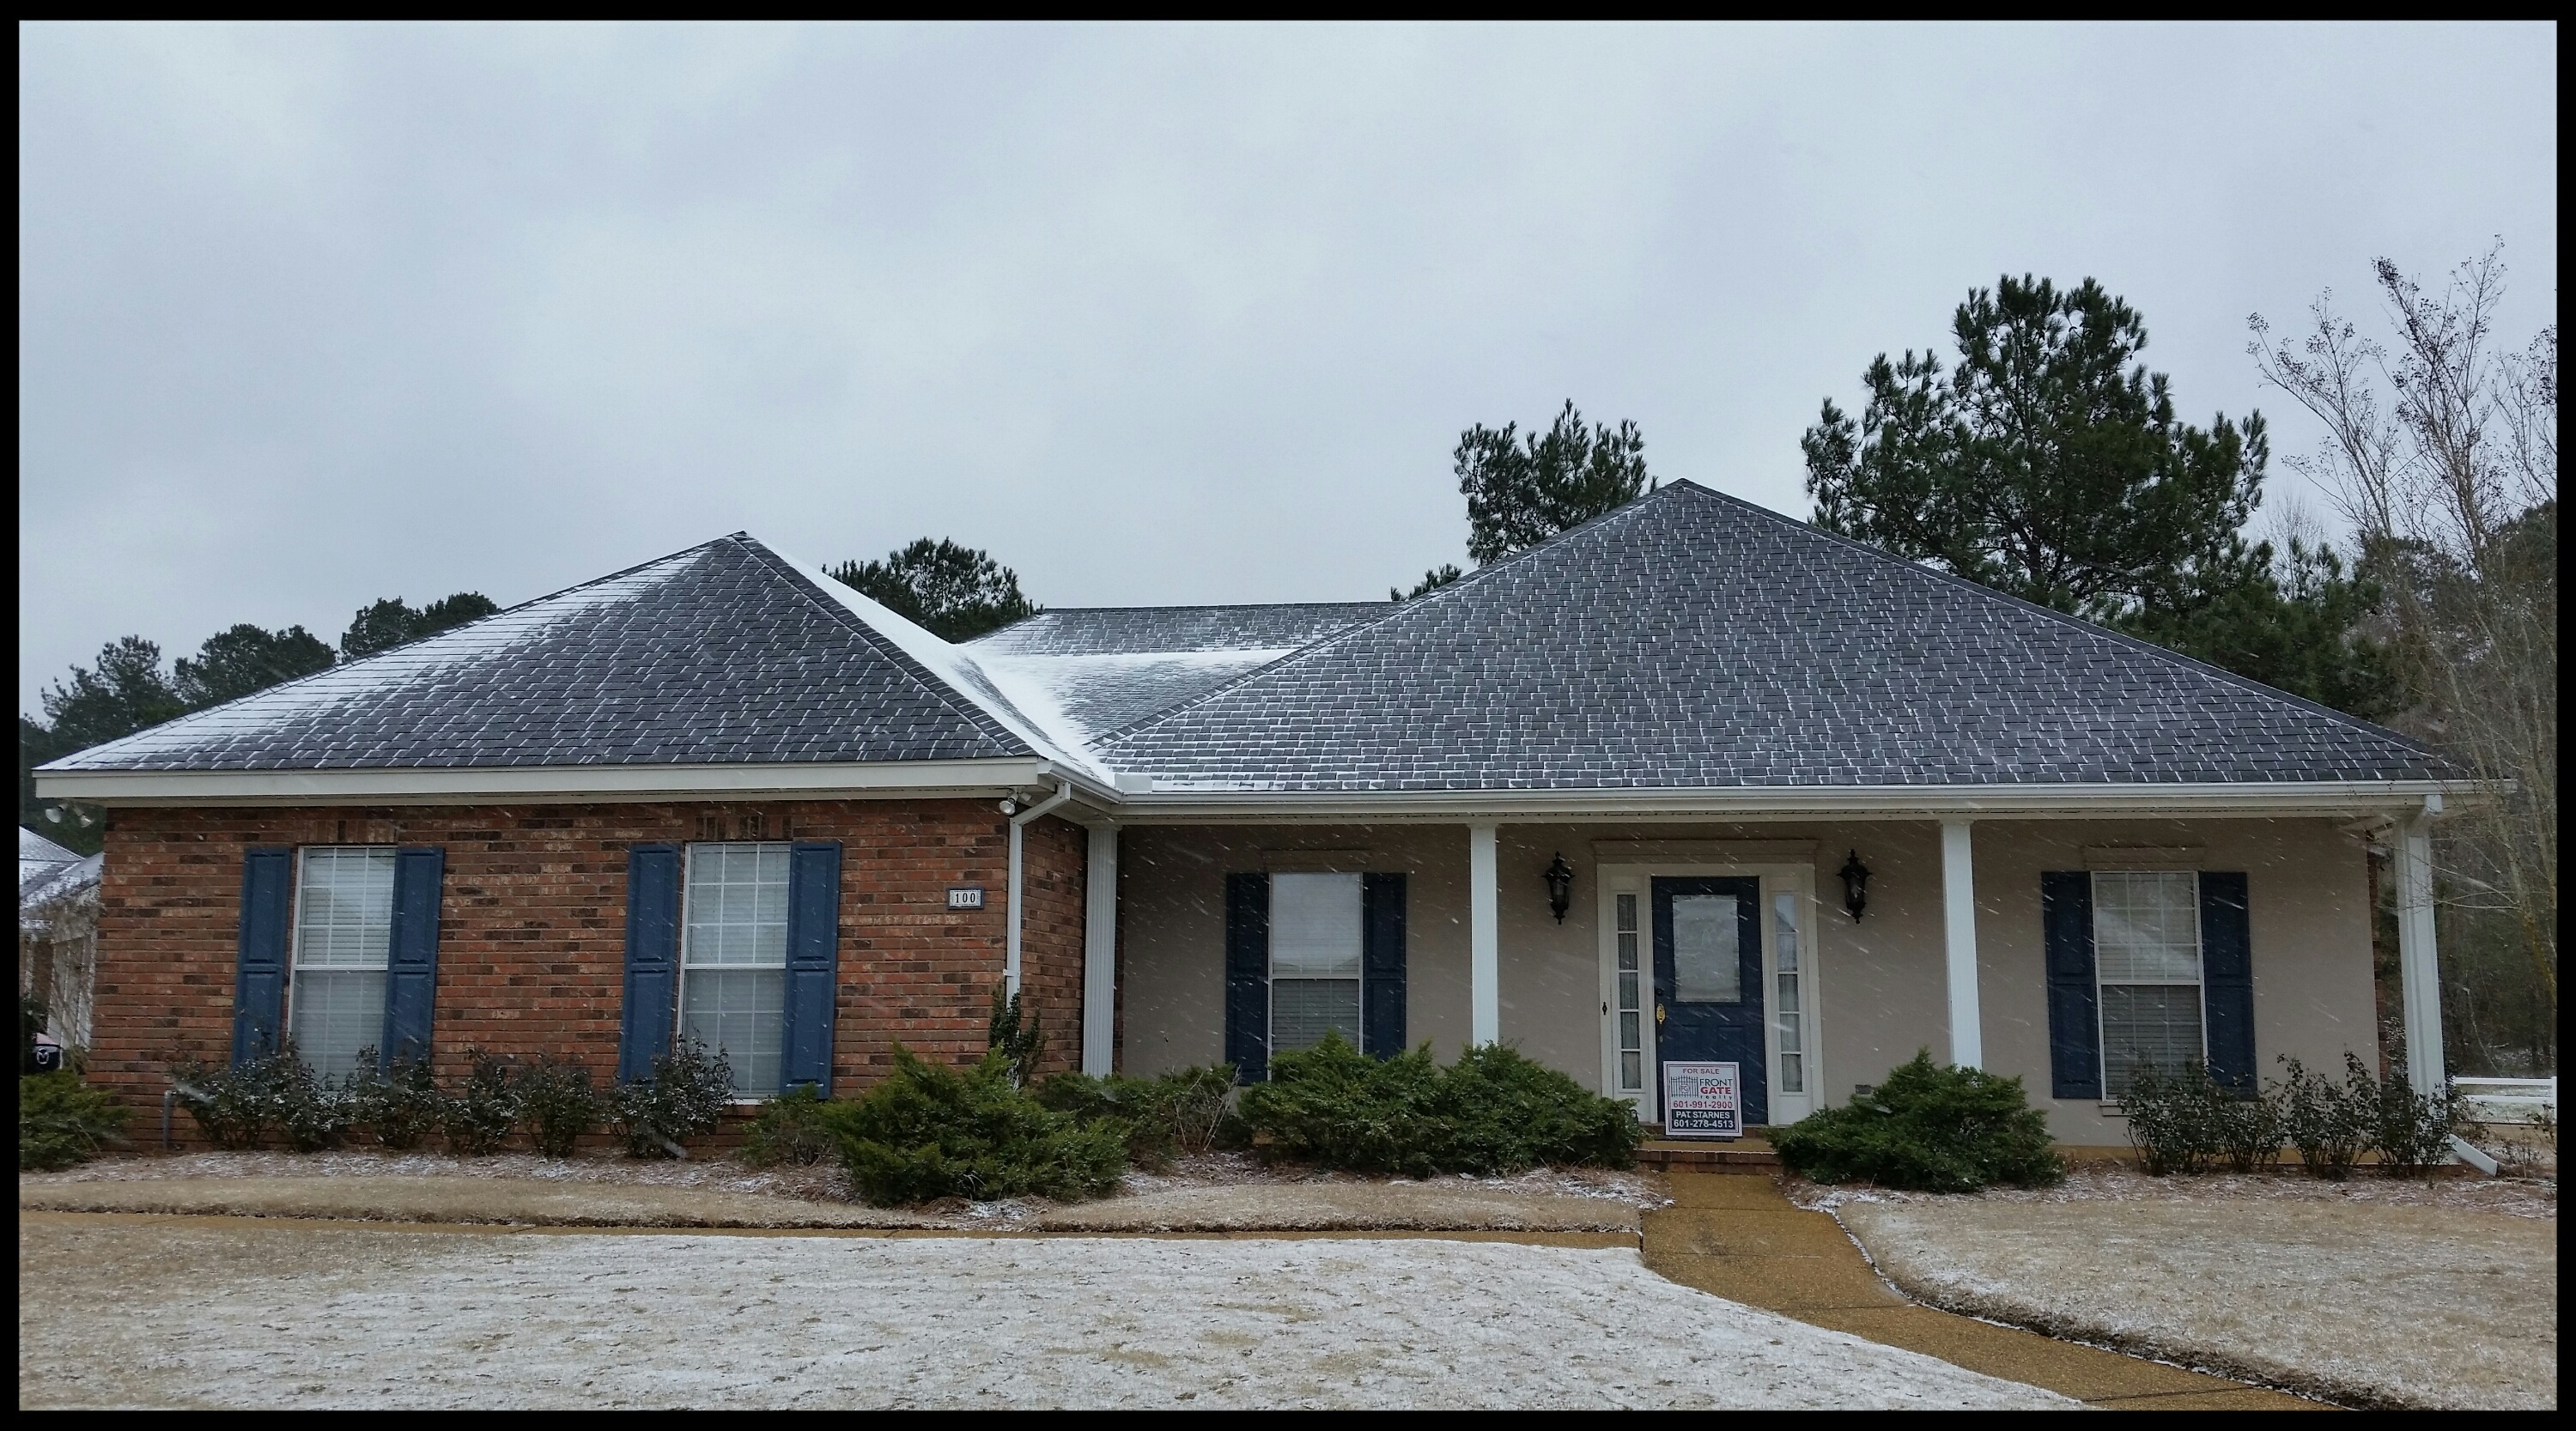 Sold house in the MS snow